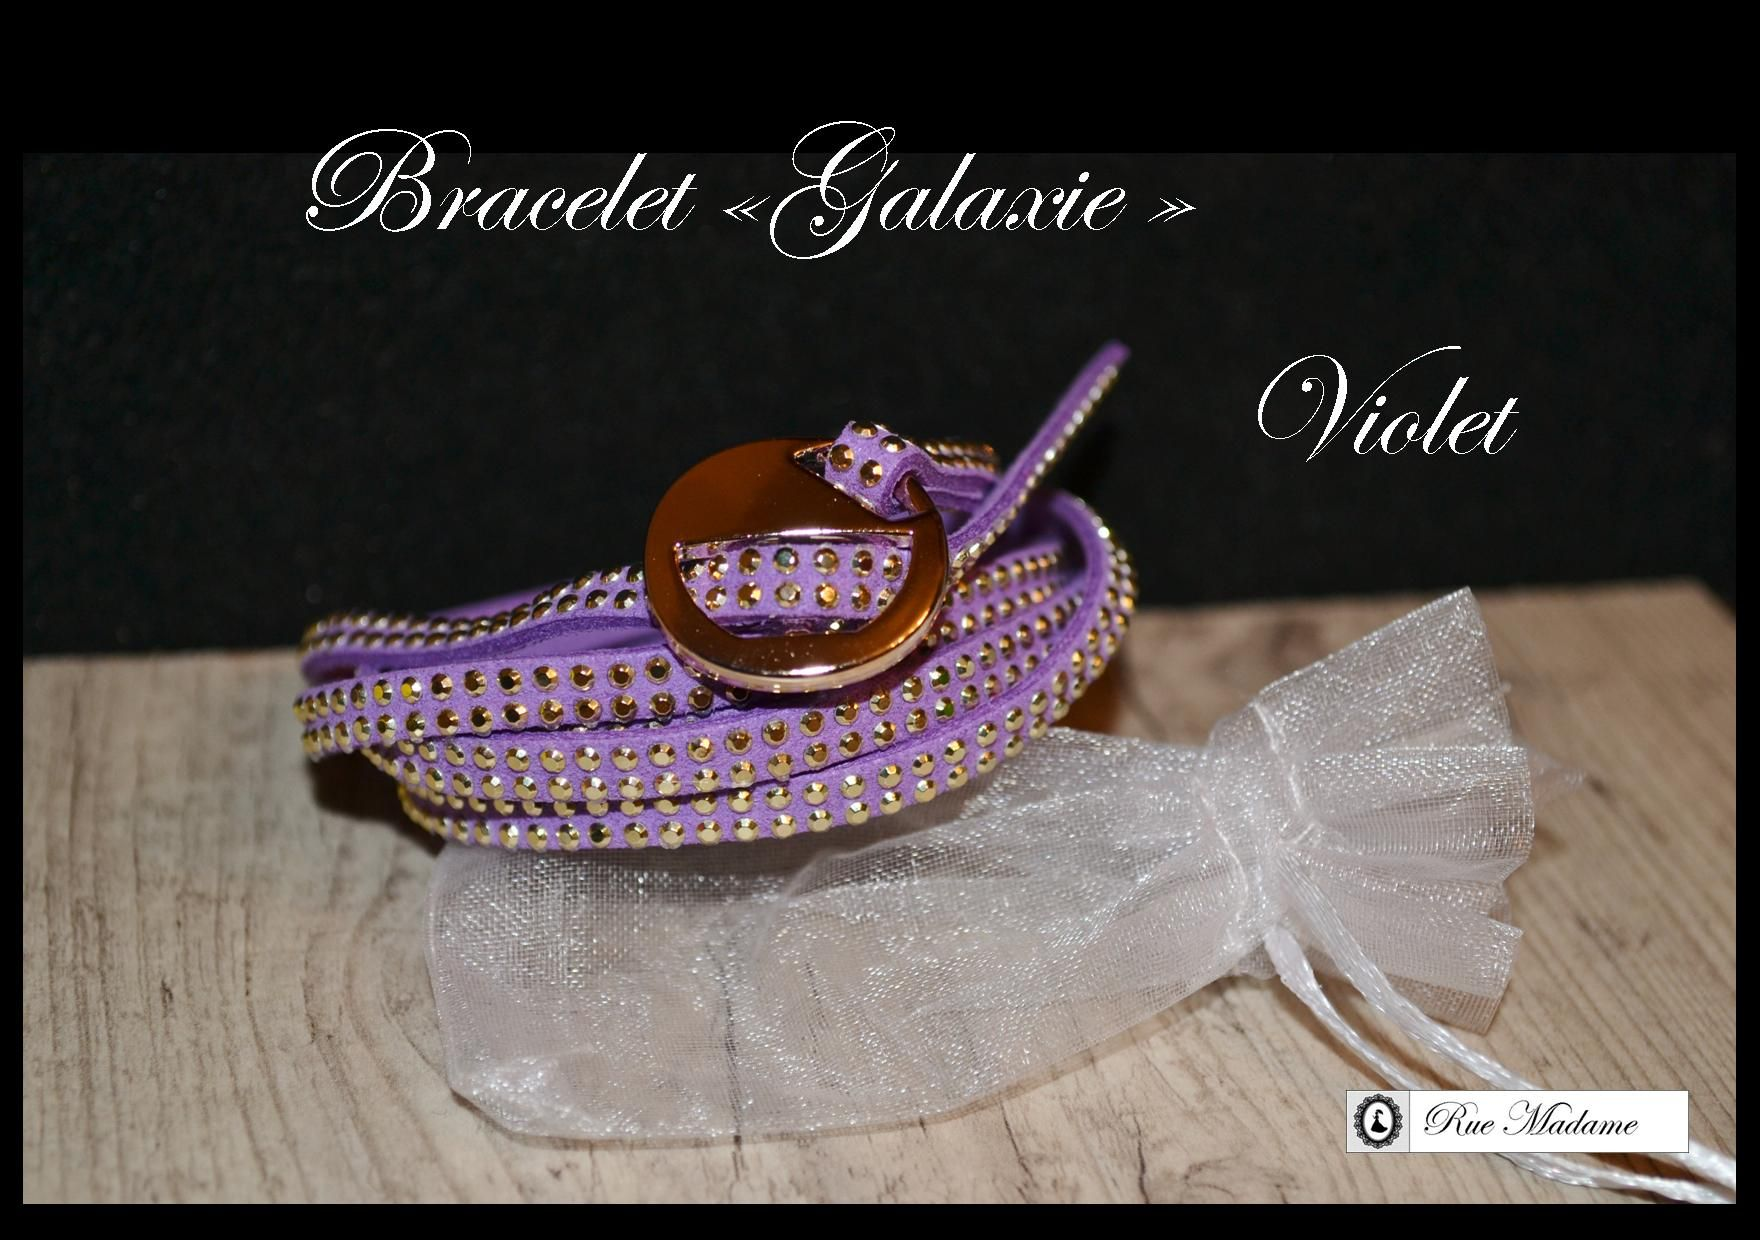 Bracelet en imitation daim avec fermoir simple.